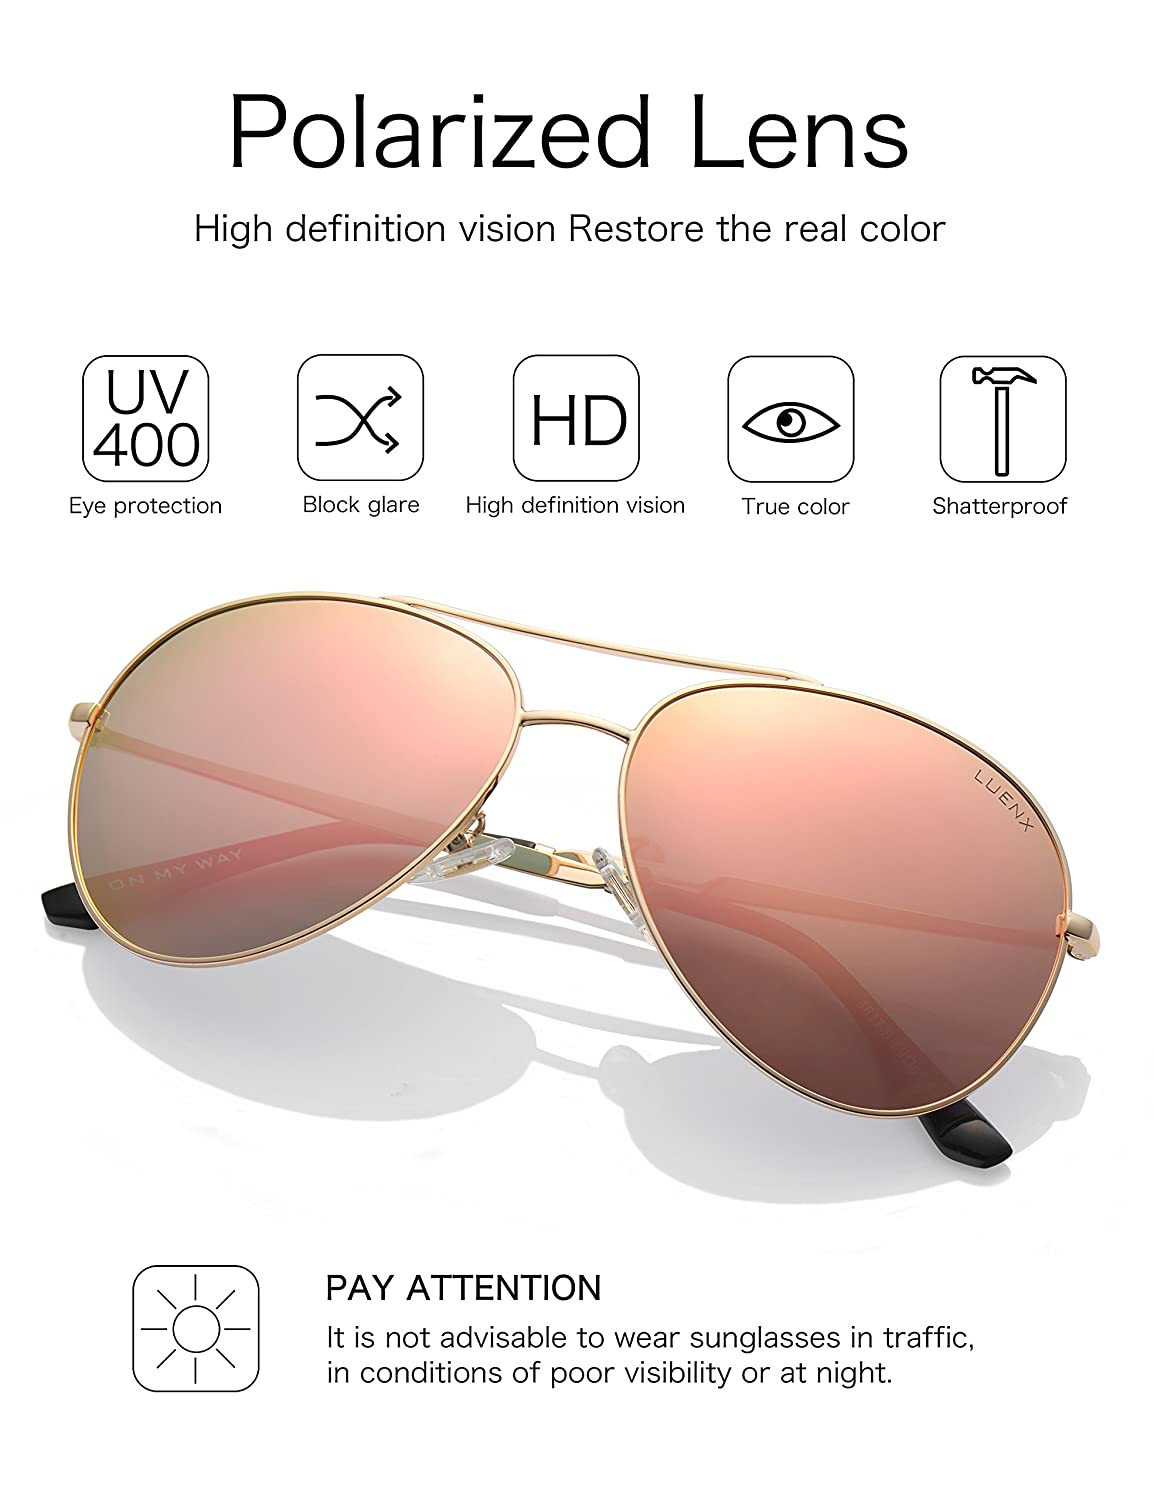 21ad694cda LUENX Aviator Sunglasses Polarized for Men   Women with Case - 400 UV pink  Lens Metal Gloss Gold Frame Mirrored 60mm  Amazon.co.uk  Clothing